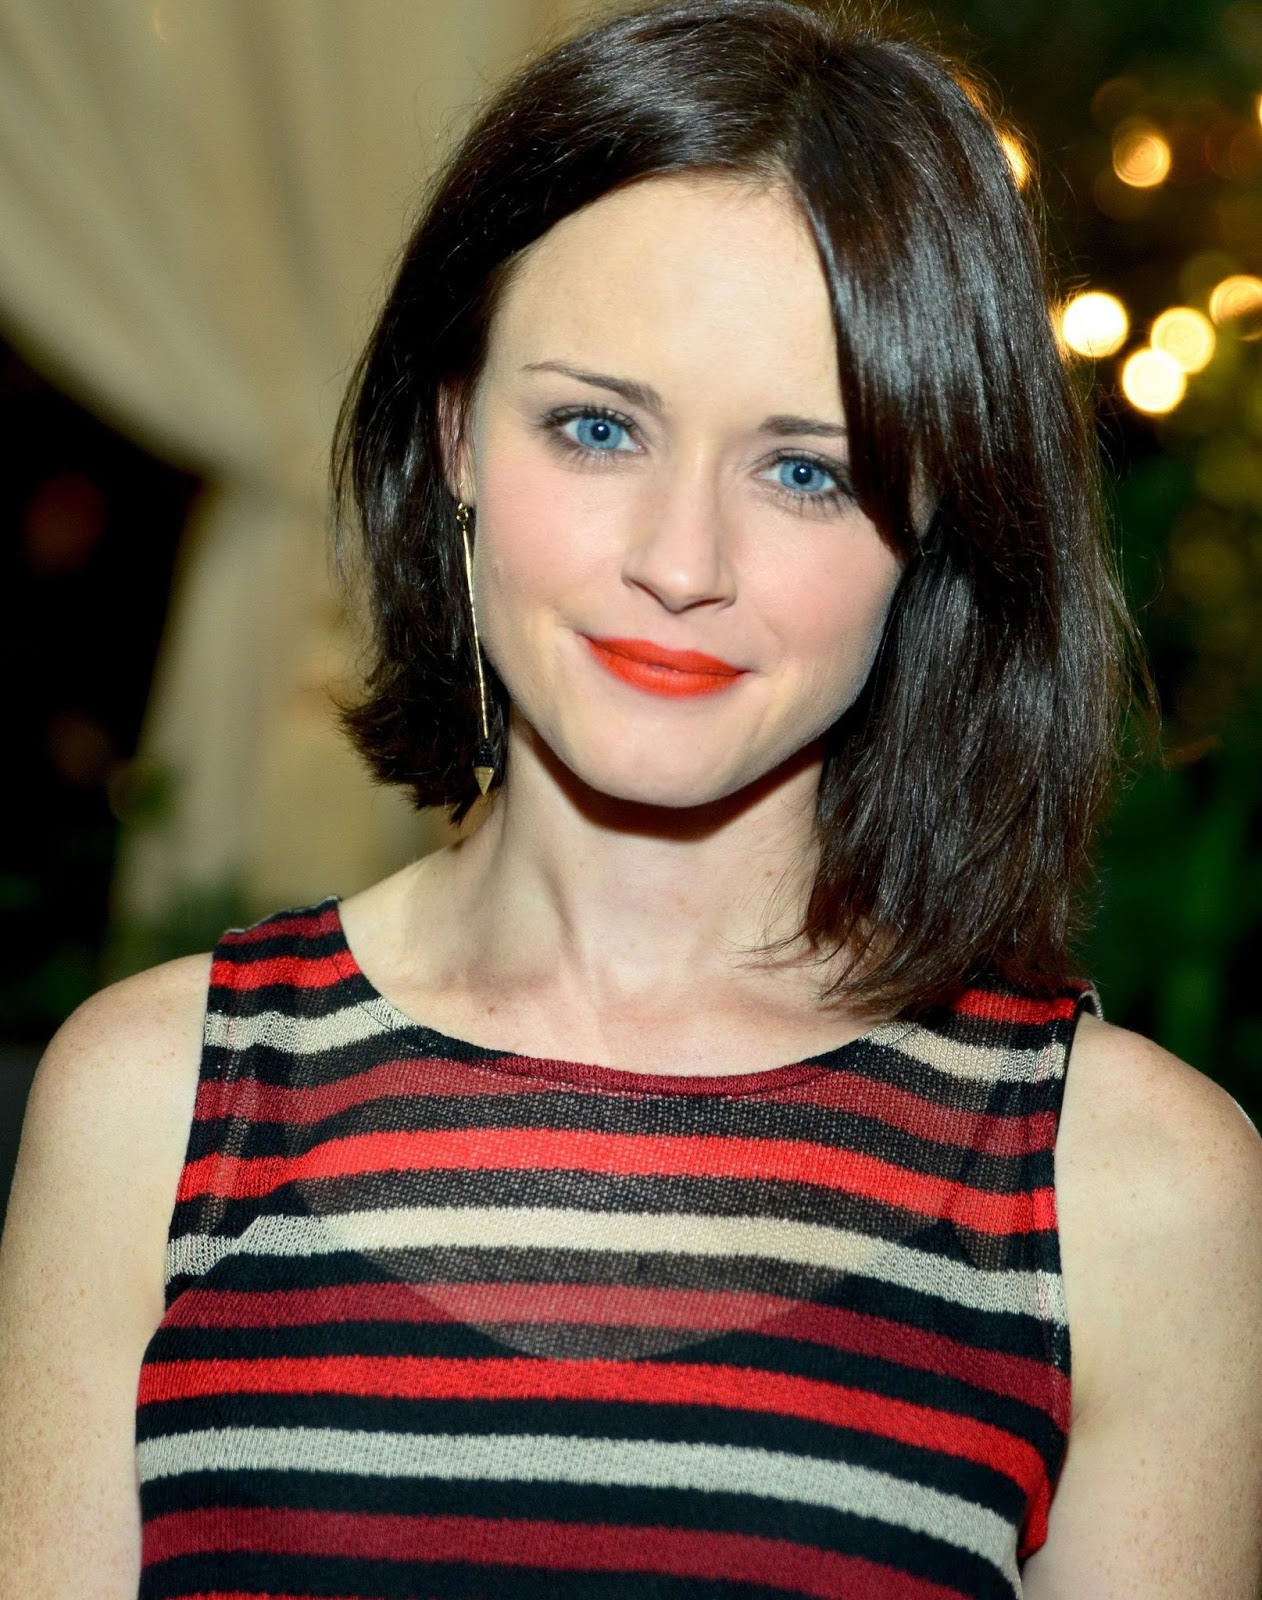 ALEXIS BLEDEL at 27th Annual Lucille Lortel Awards in New